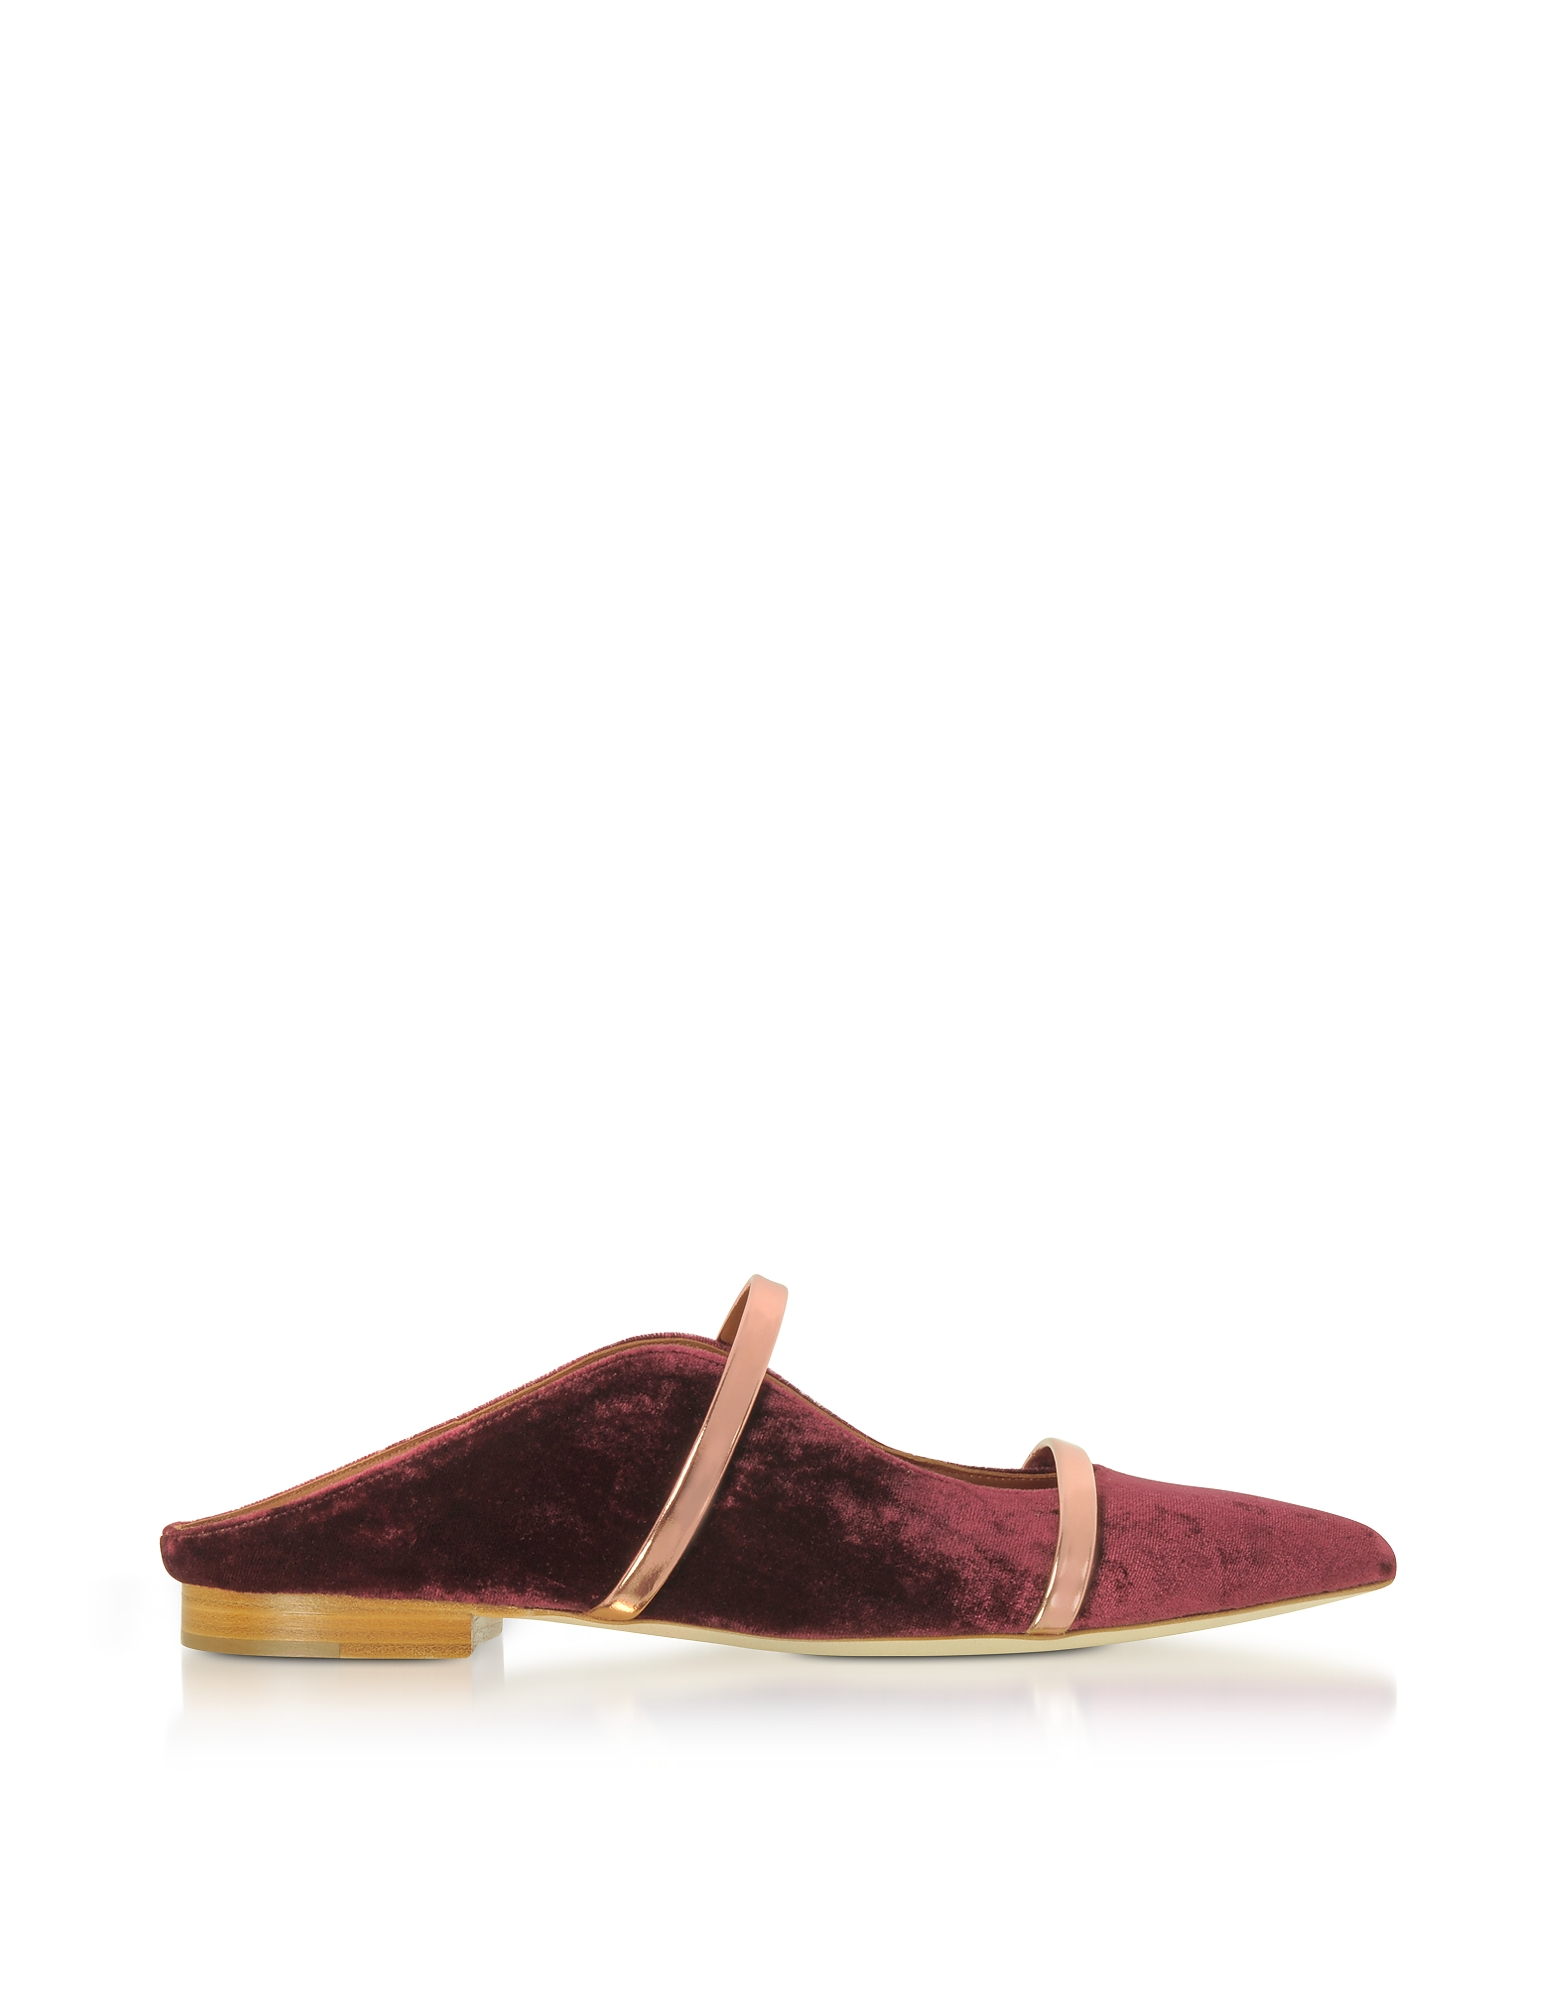 Malone Souliers Shoes, Plum Velvet and Rose Gold Nappa Leather Maureen Flat Slides